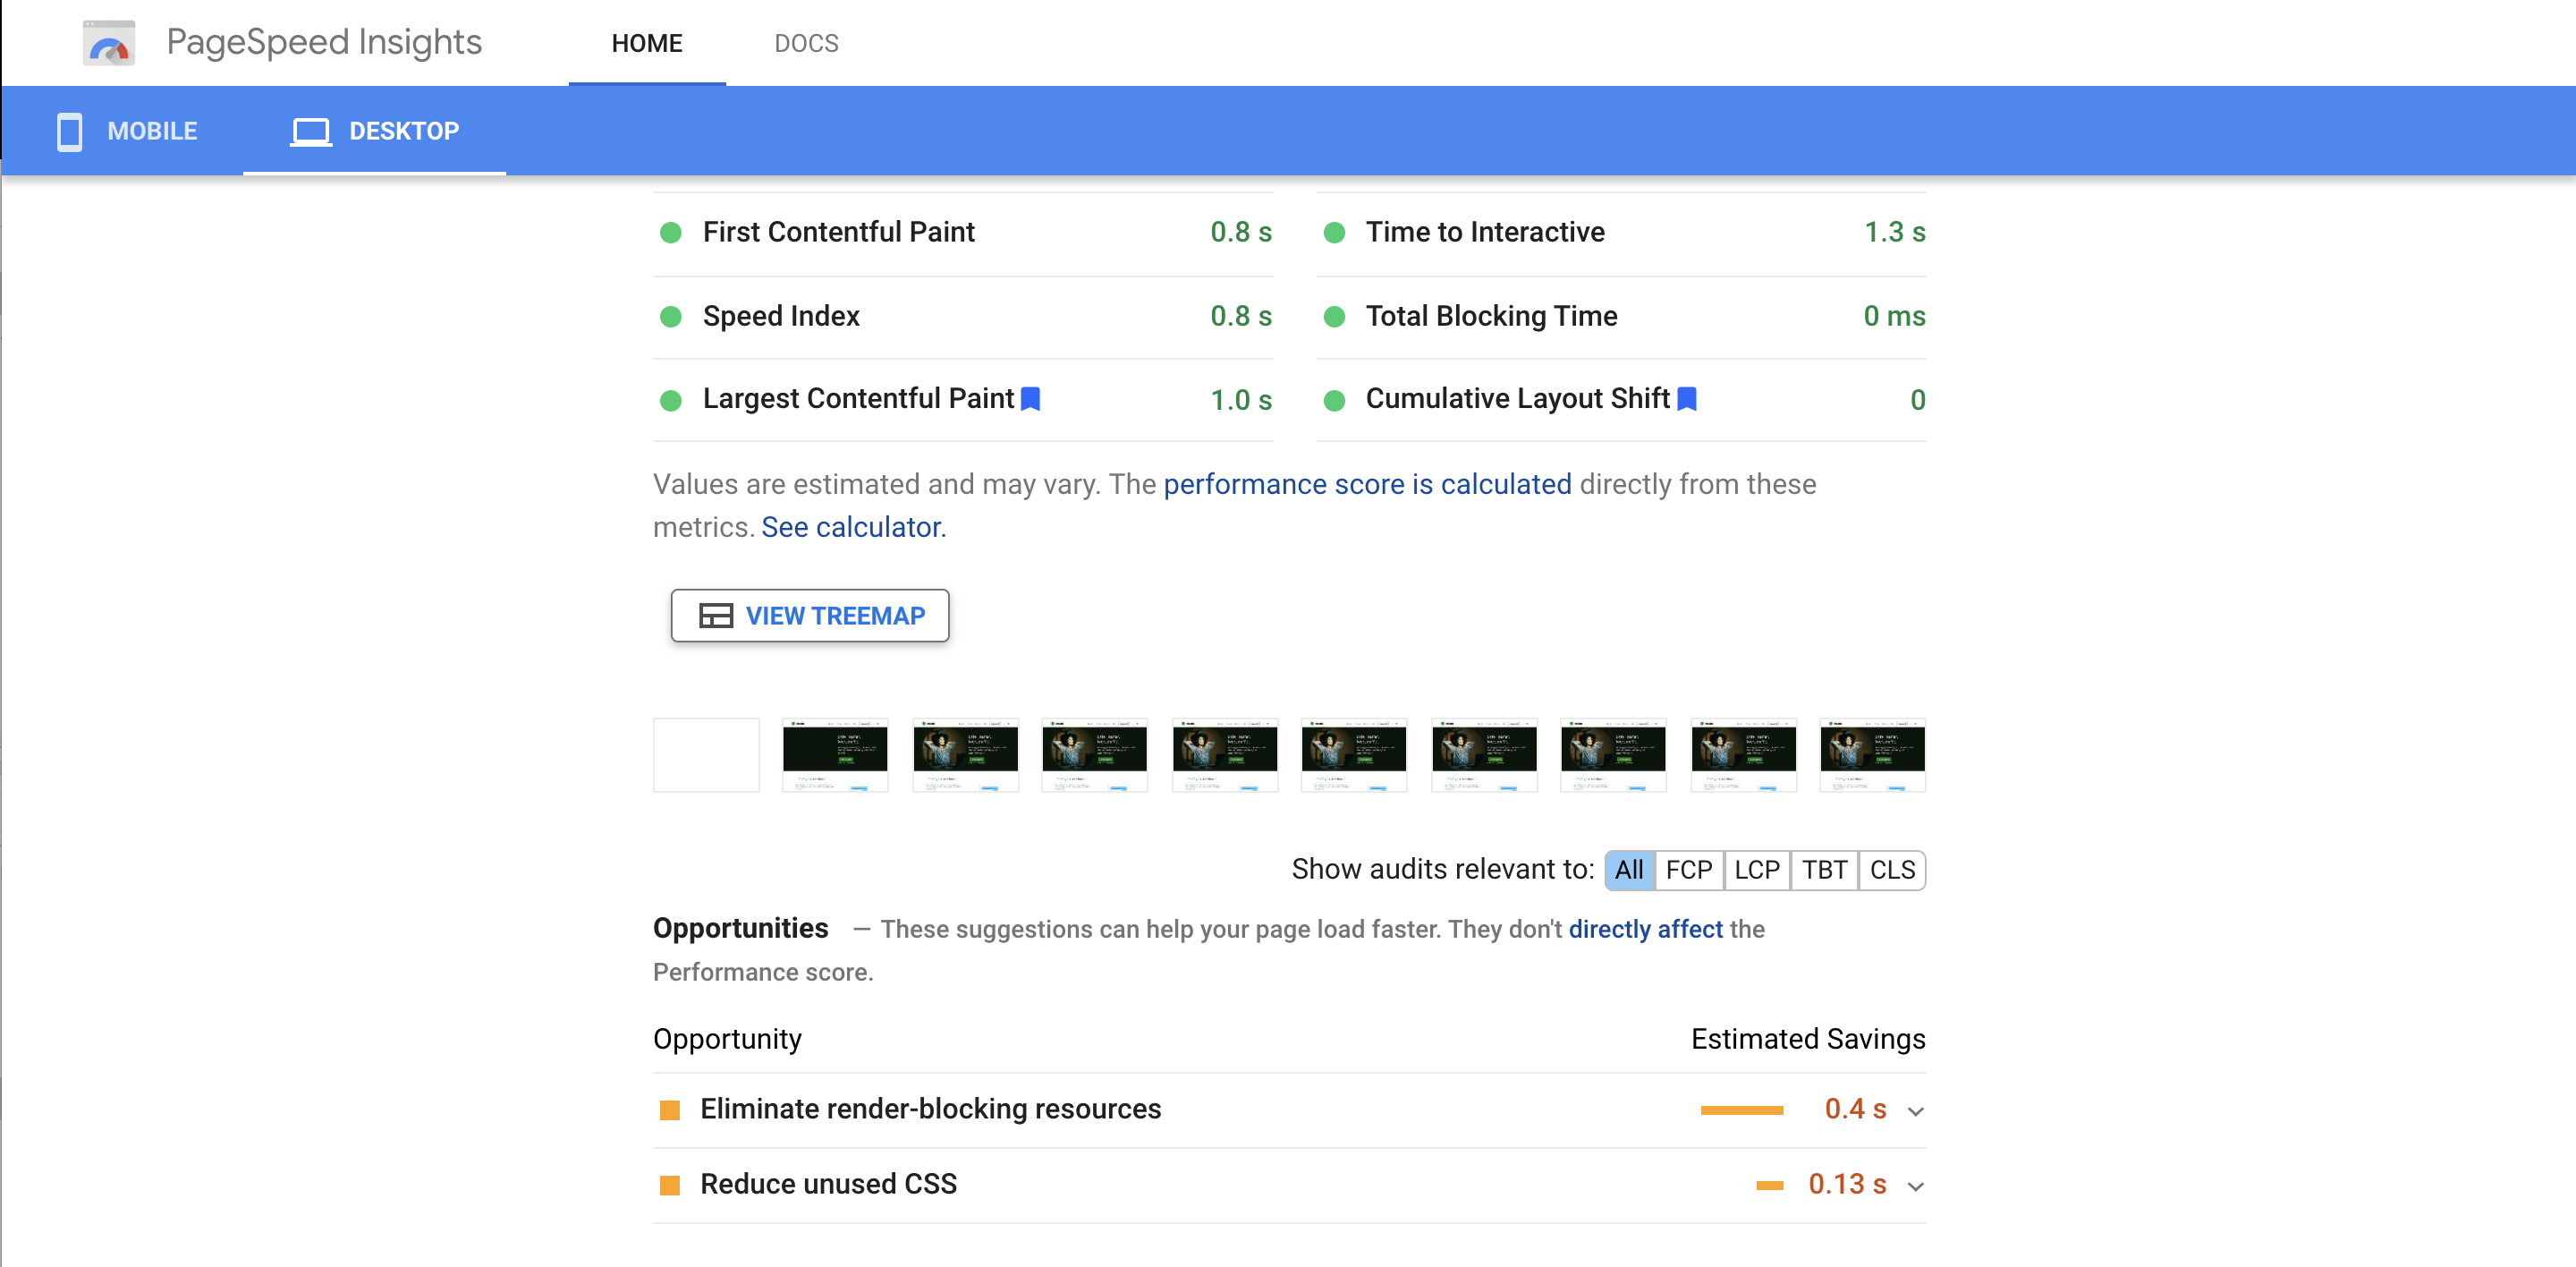 Opportunities section on Google PageSpeed Insights for Jetpack.com